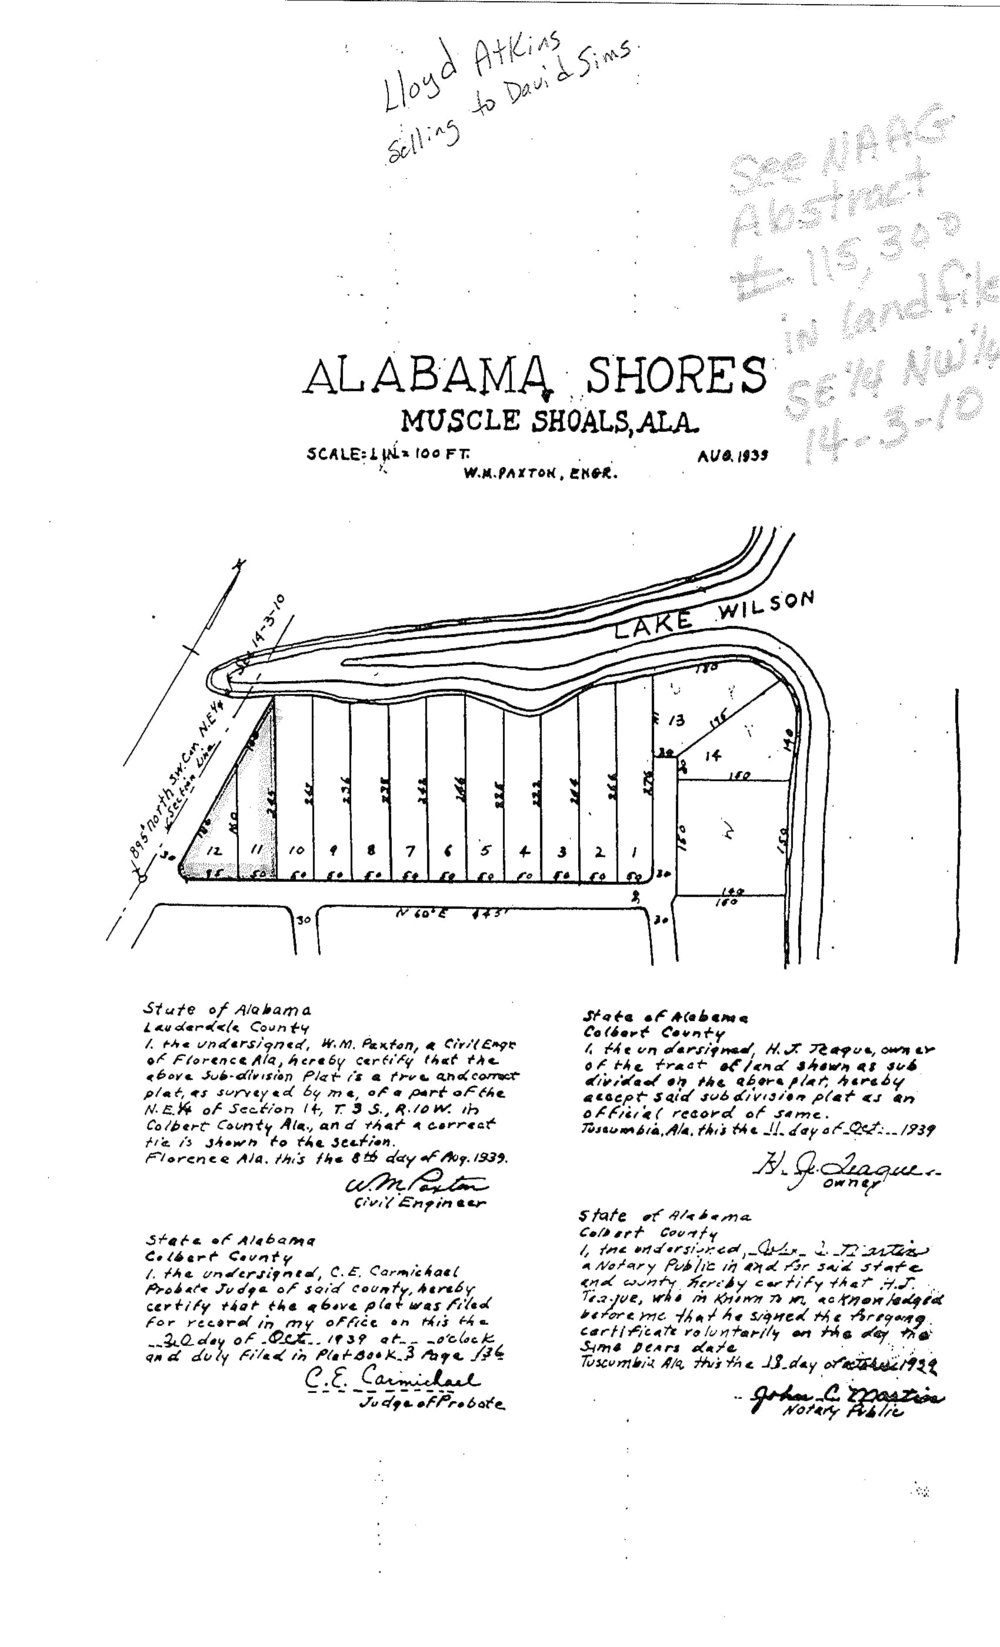 Alabama Shores plat-01.jpg